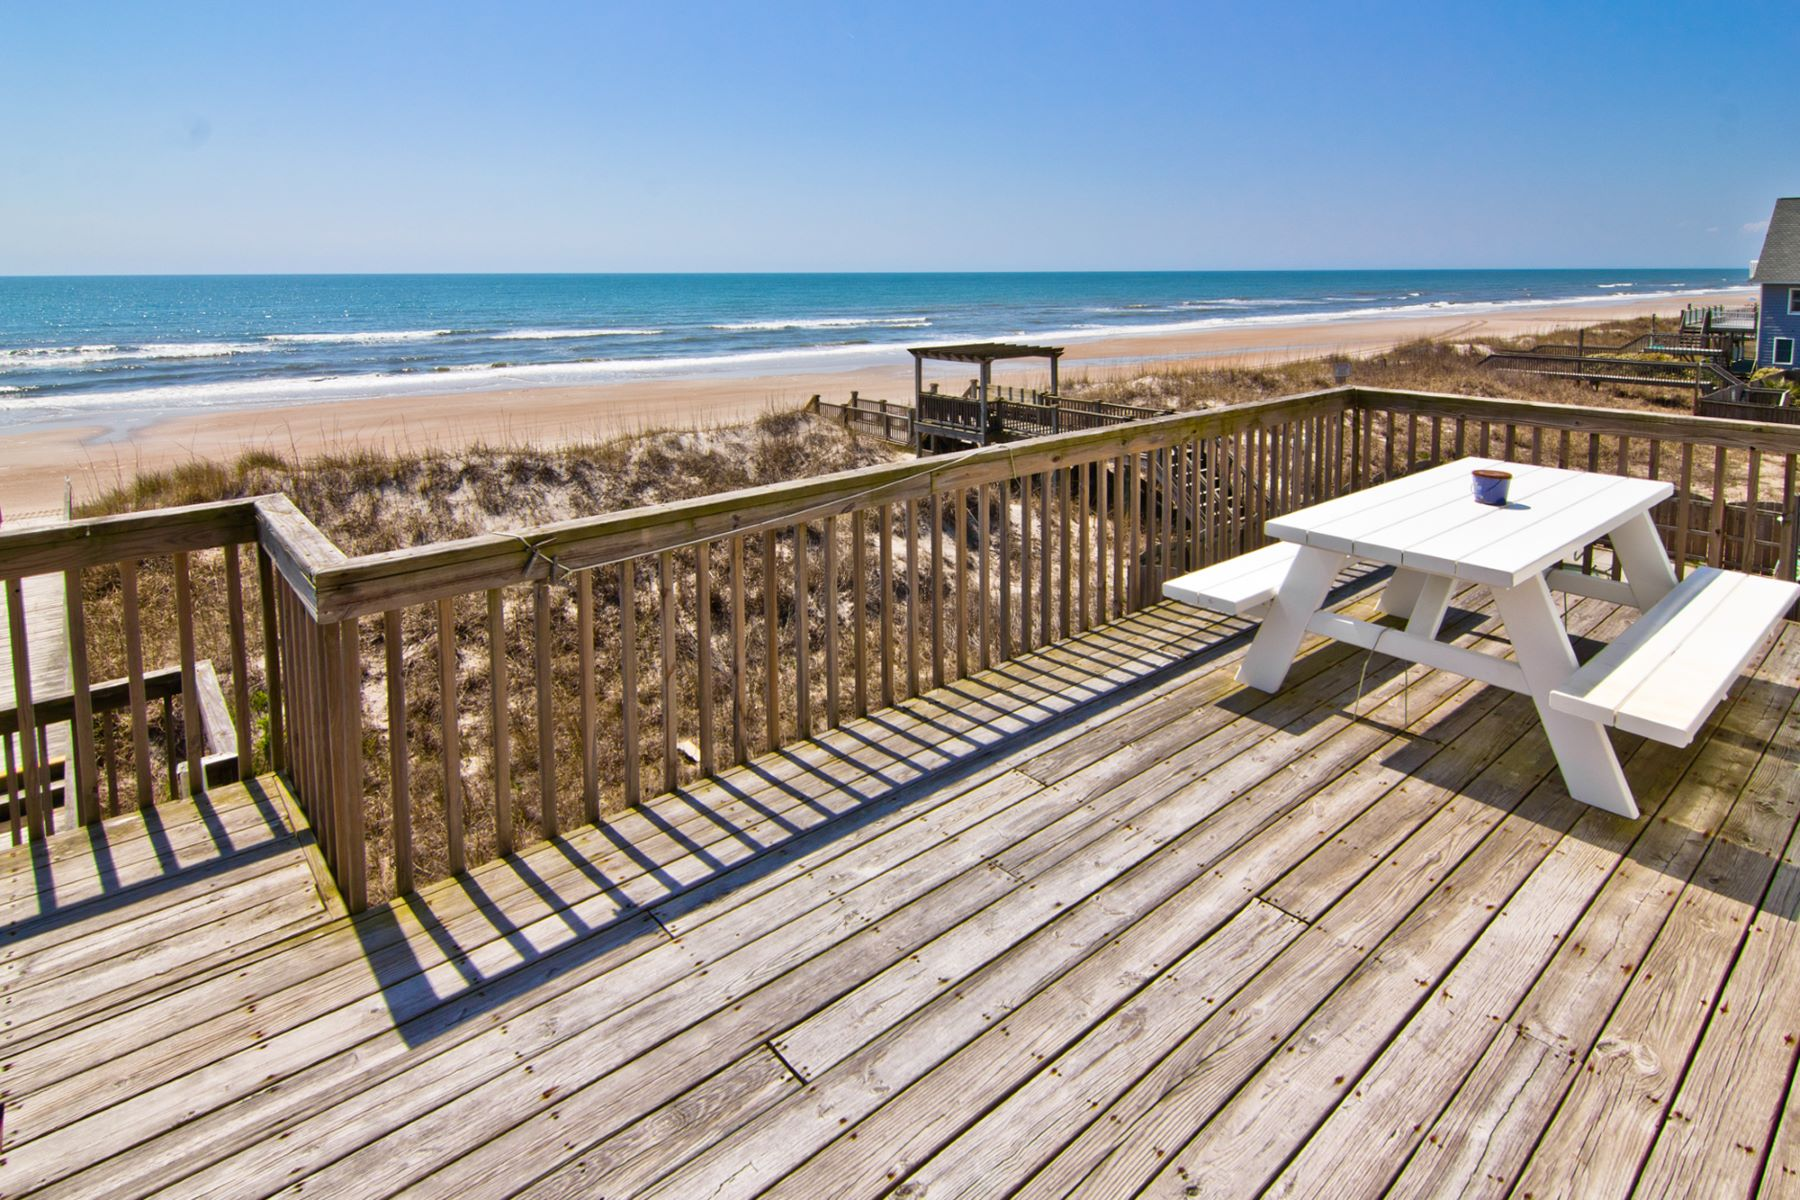 複式單位 為 出售 在 Oceanfront Home on the Pristine Shore of North Topsail Beach 3874 Island Drive, N Topsail Beach, 北卡羅來納州, 28460 美國